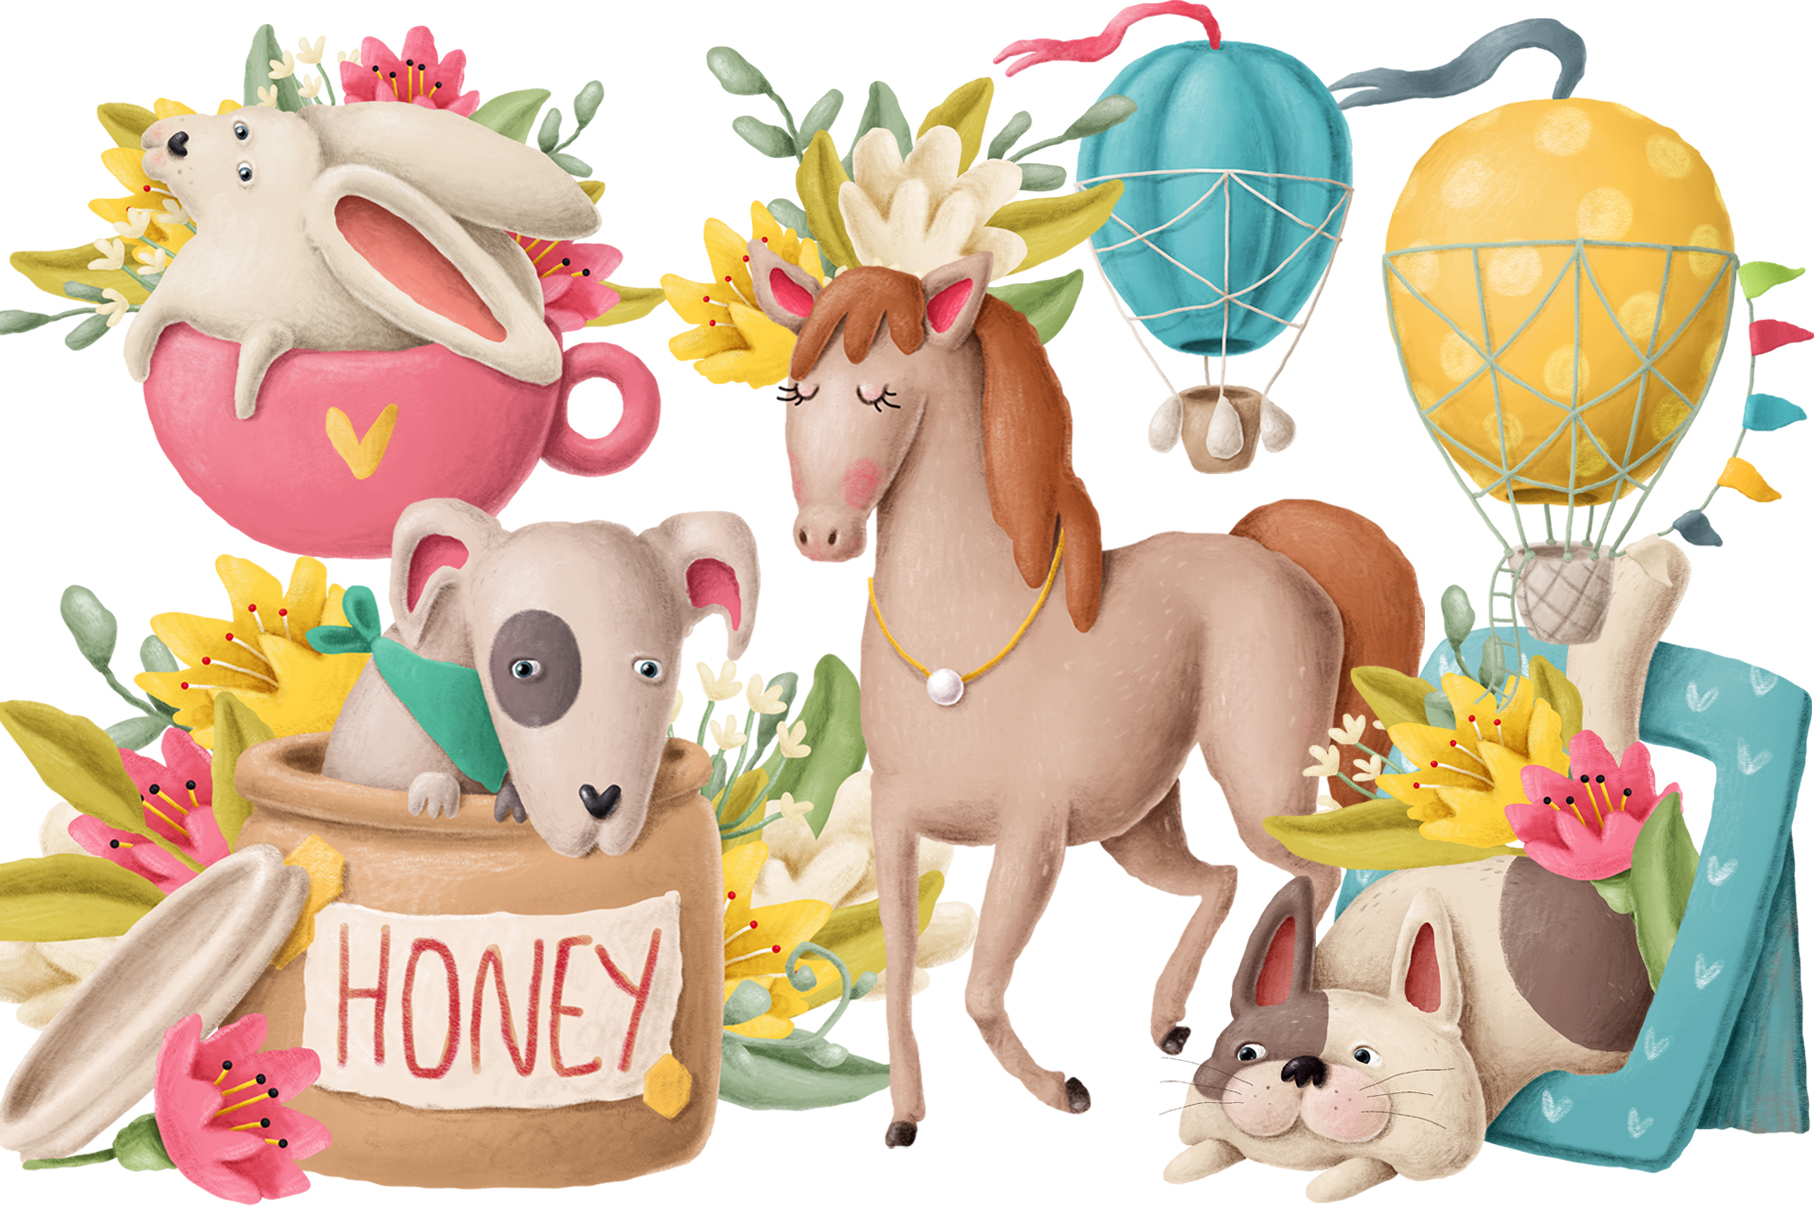 Cute animals clipart set example image 1